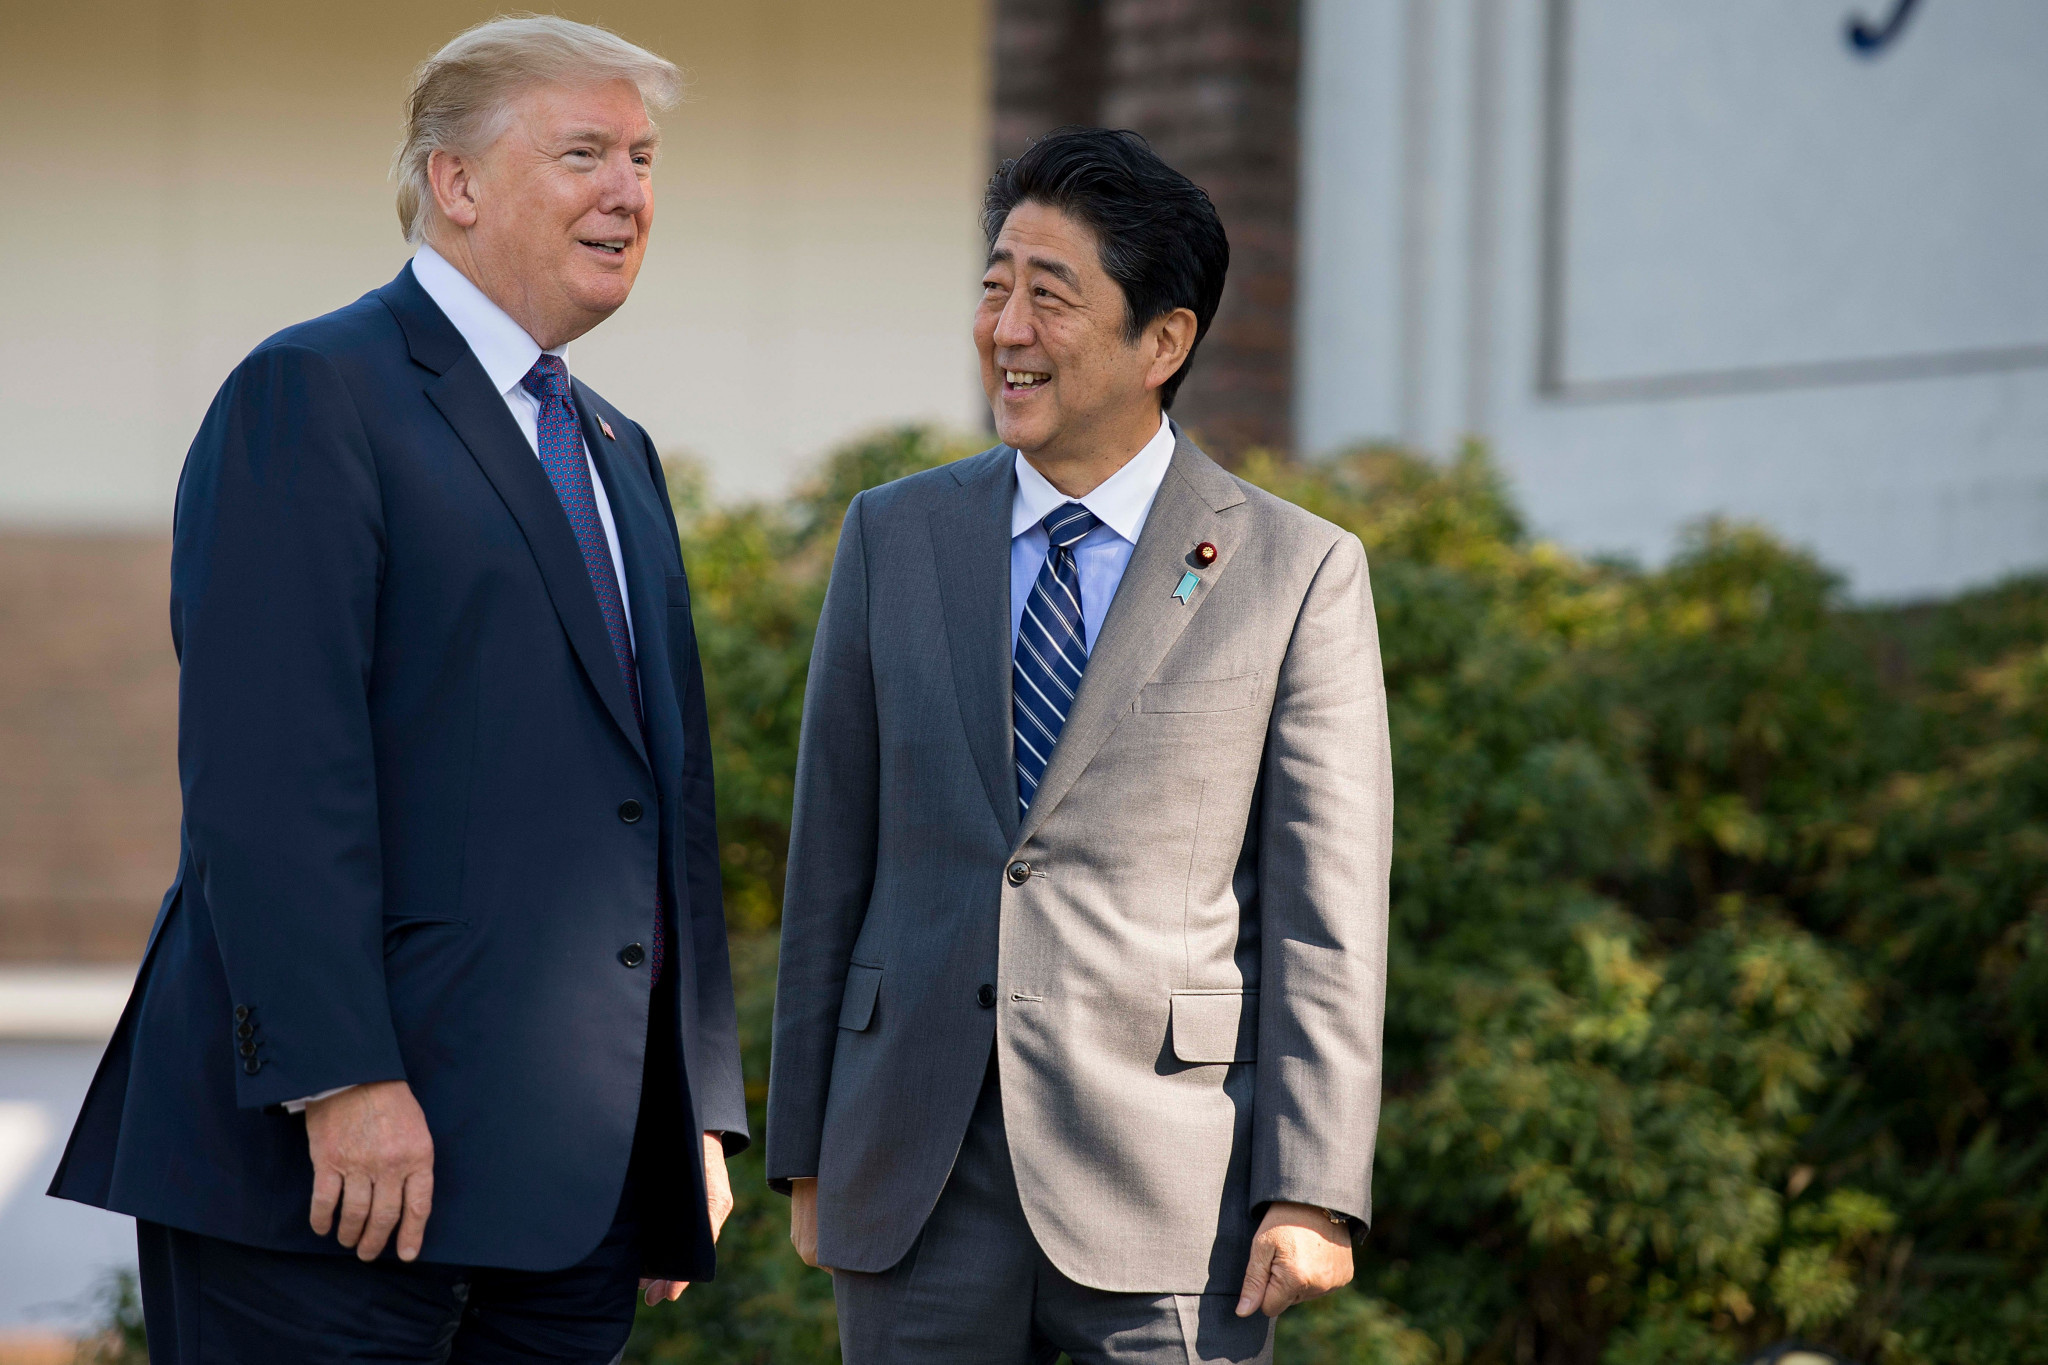 United States President Donald Trump and Japanese Prime Minister Shinzō Abe played a round of golf at the Kasumigaseki Country Club in November ©Getty Images